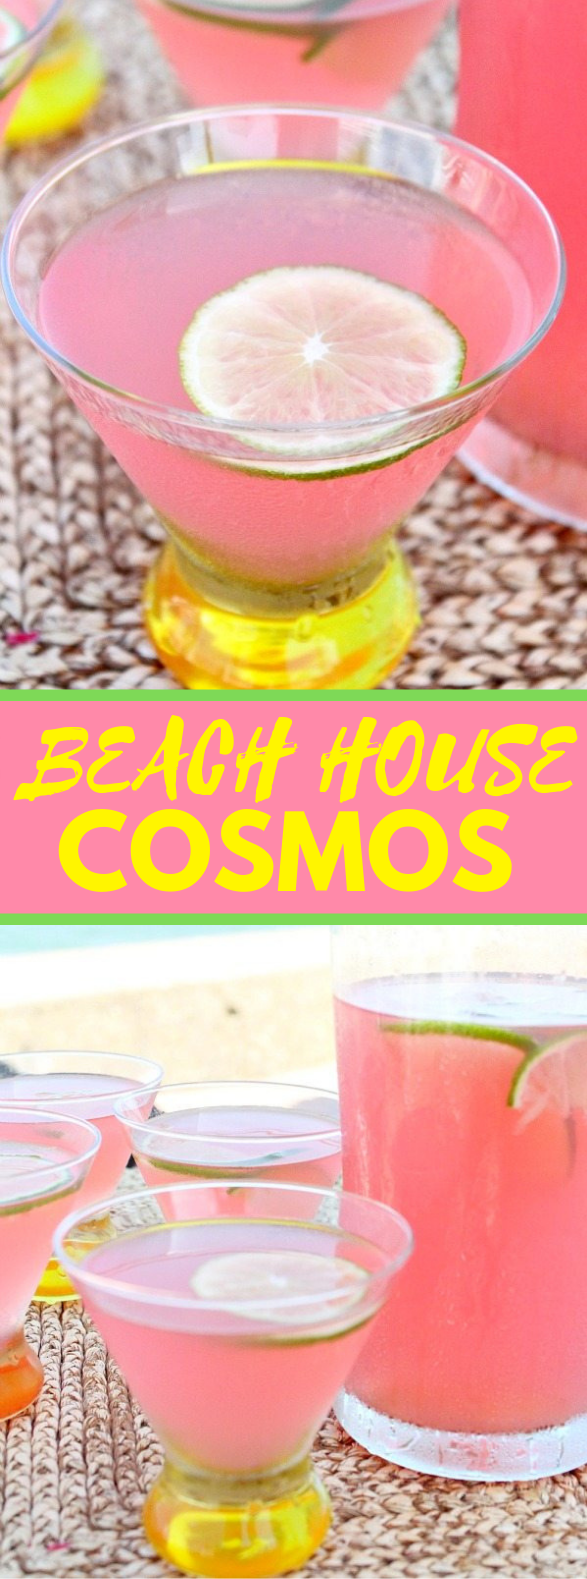 BEACH HOUSE COSMOS #drinks #summer